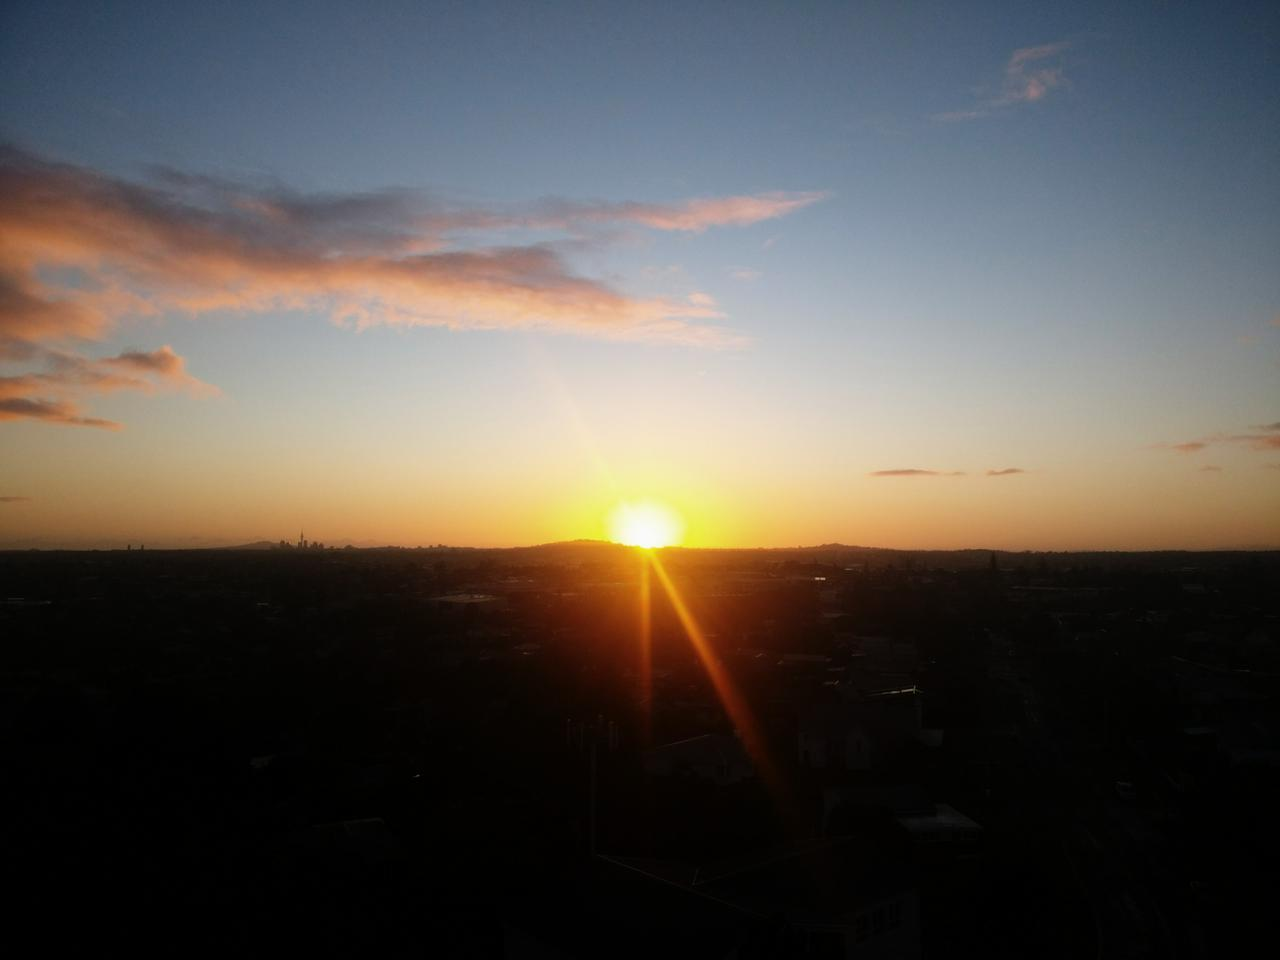 Sunrise, looking towards the centre of Auckland